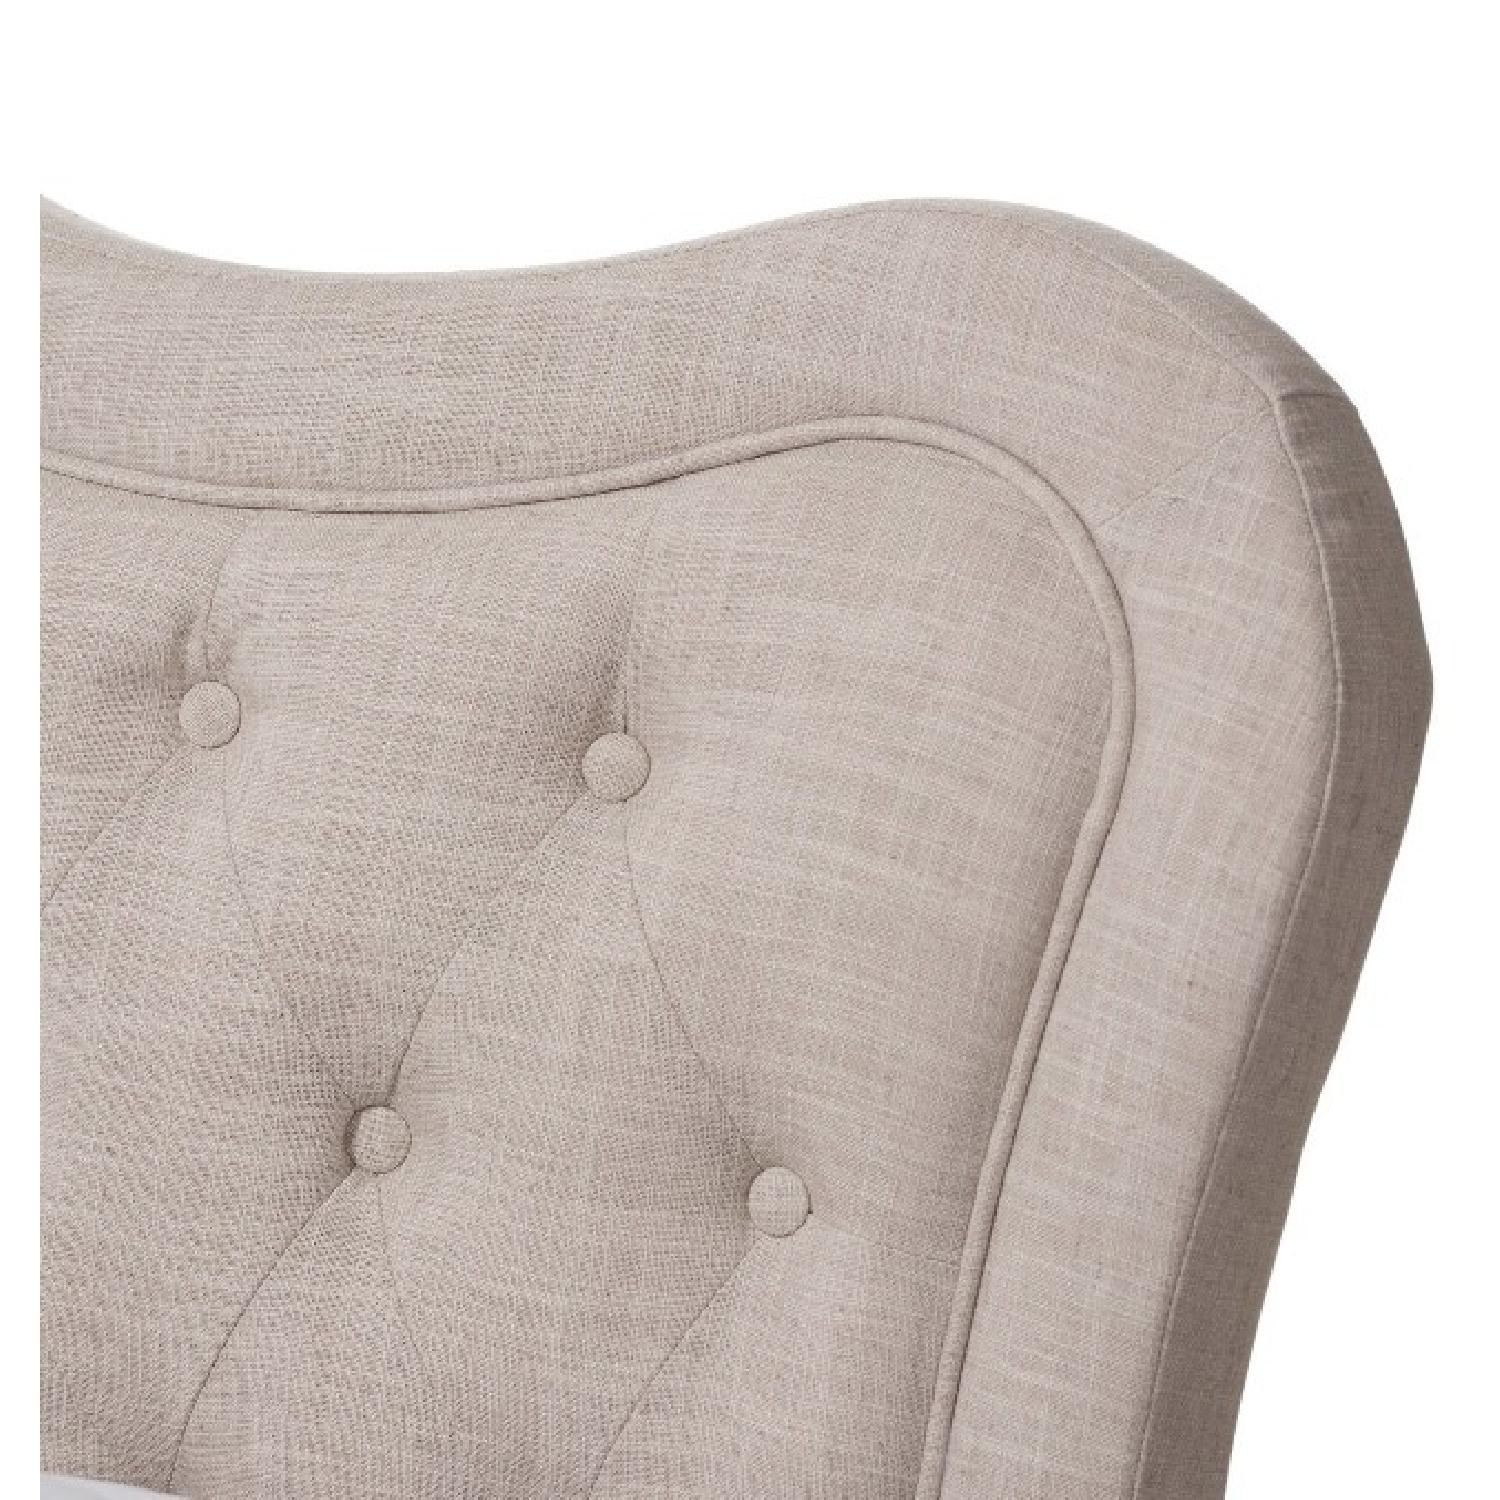 King Fabric Upholstered Tufted Headboard